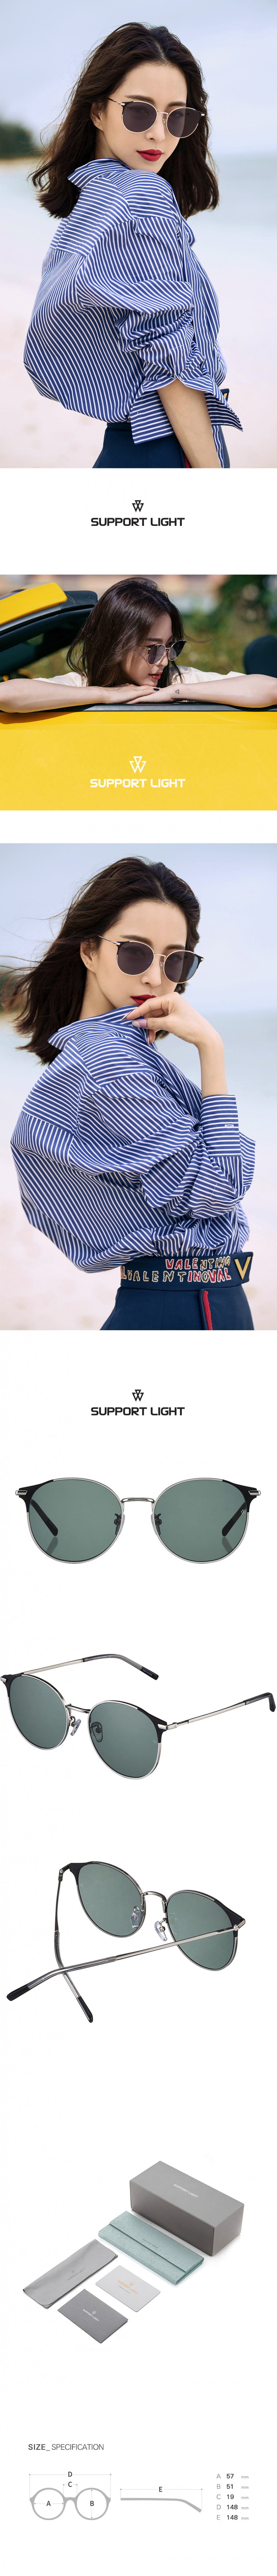 서포트라이트(SUPPORTLIGHT) MAROON 02